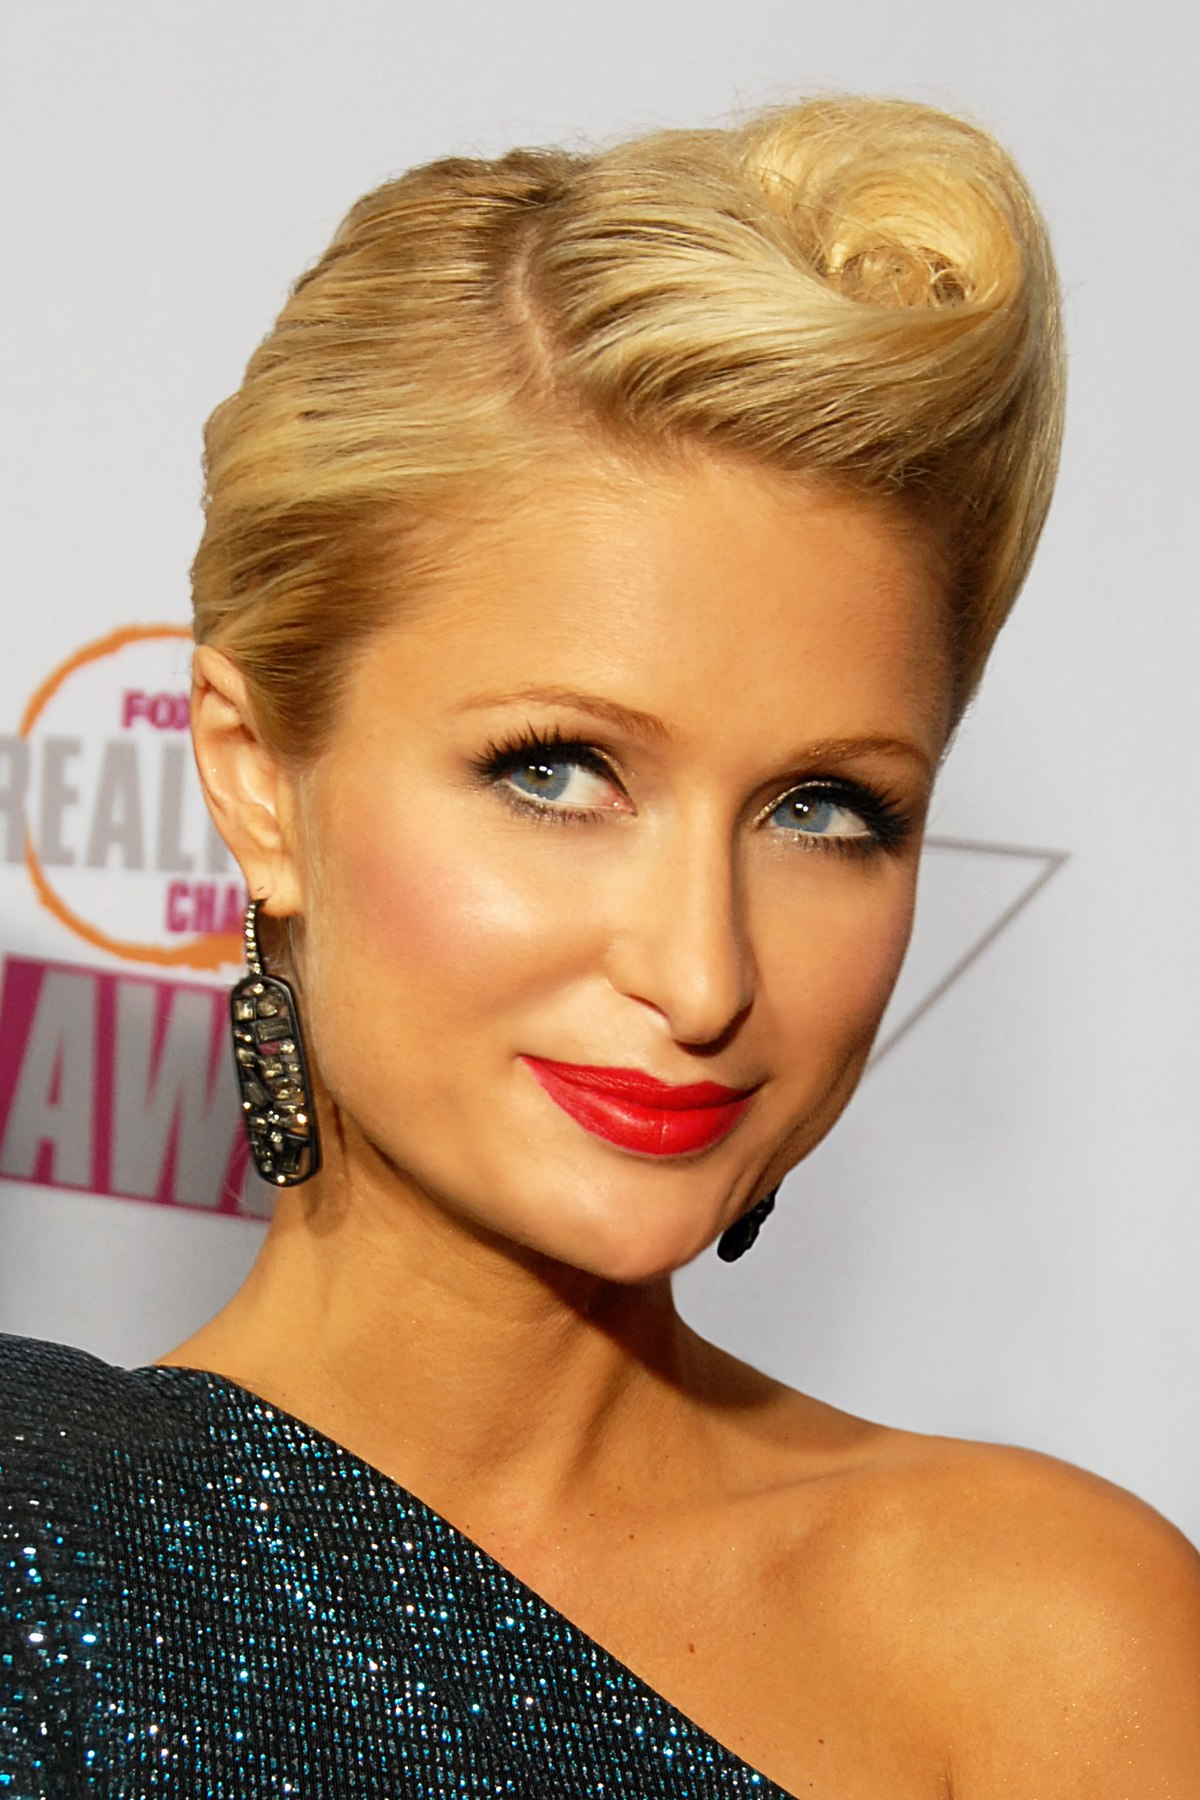 Paris hilton fall-5349